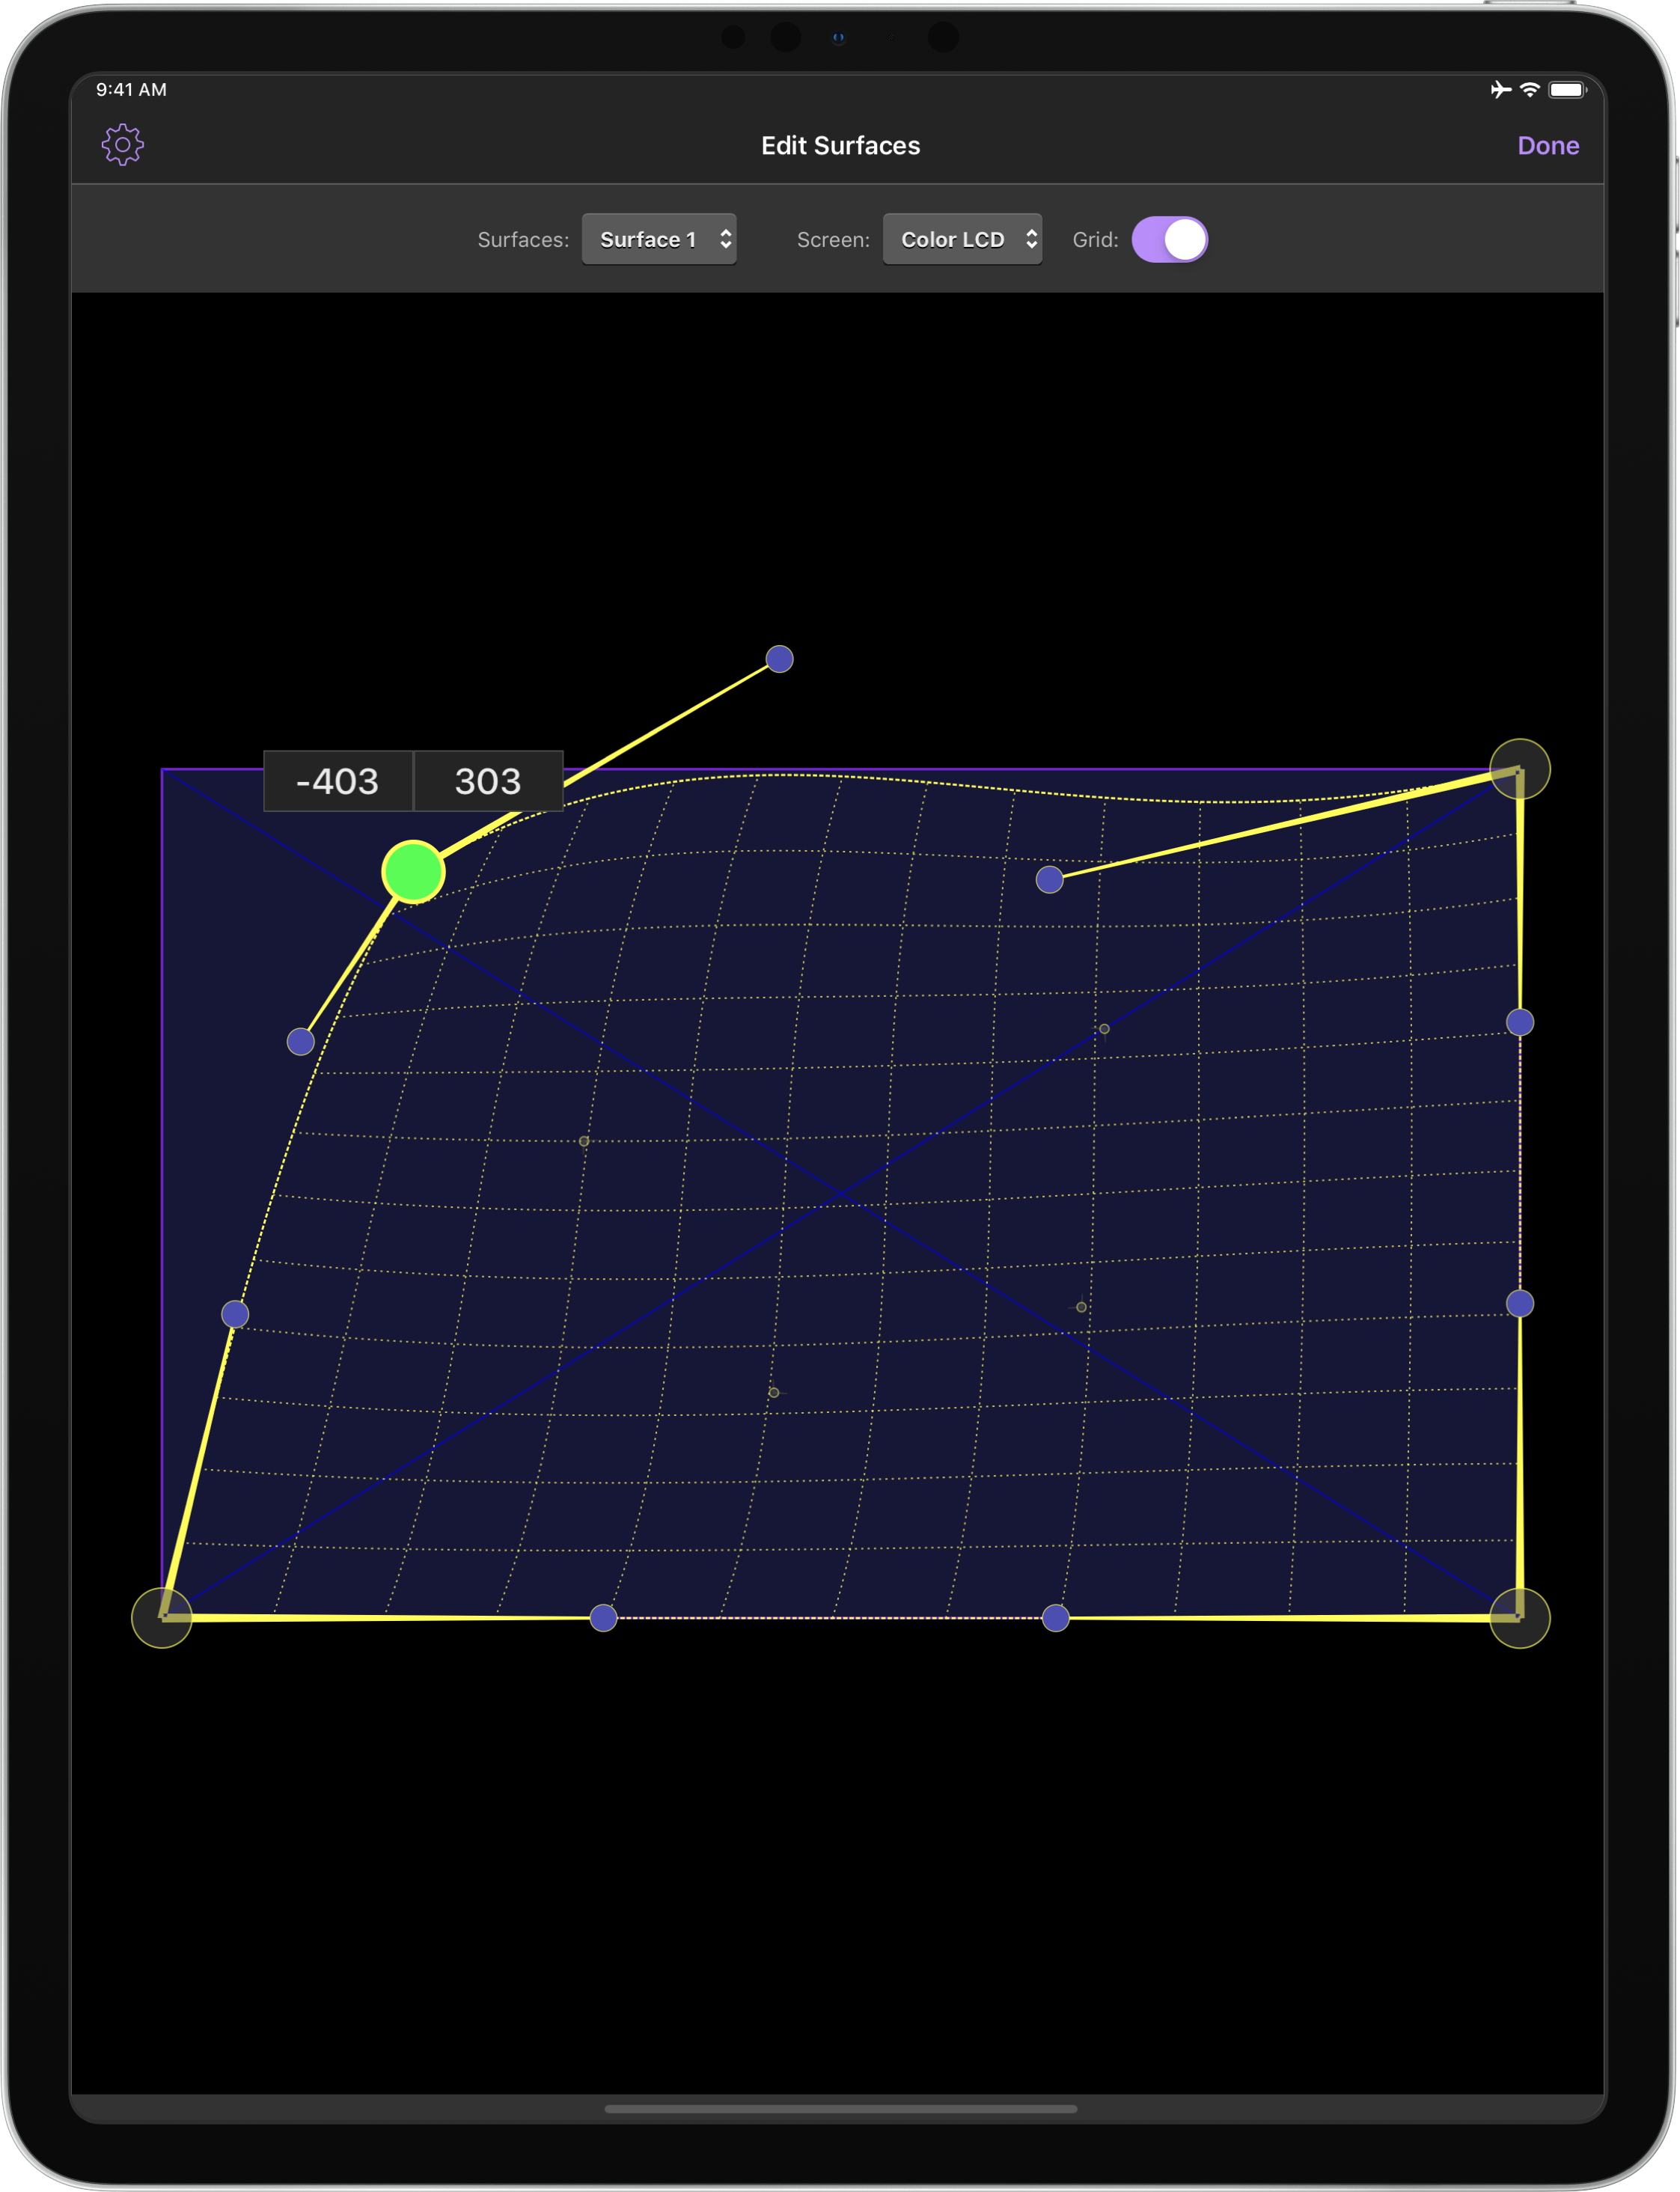 QLab Remote mobile surface editor